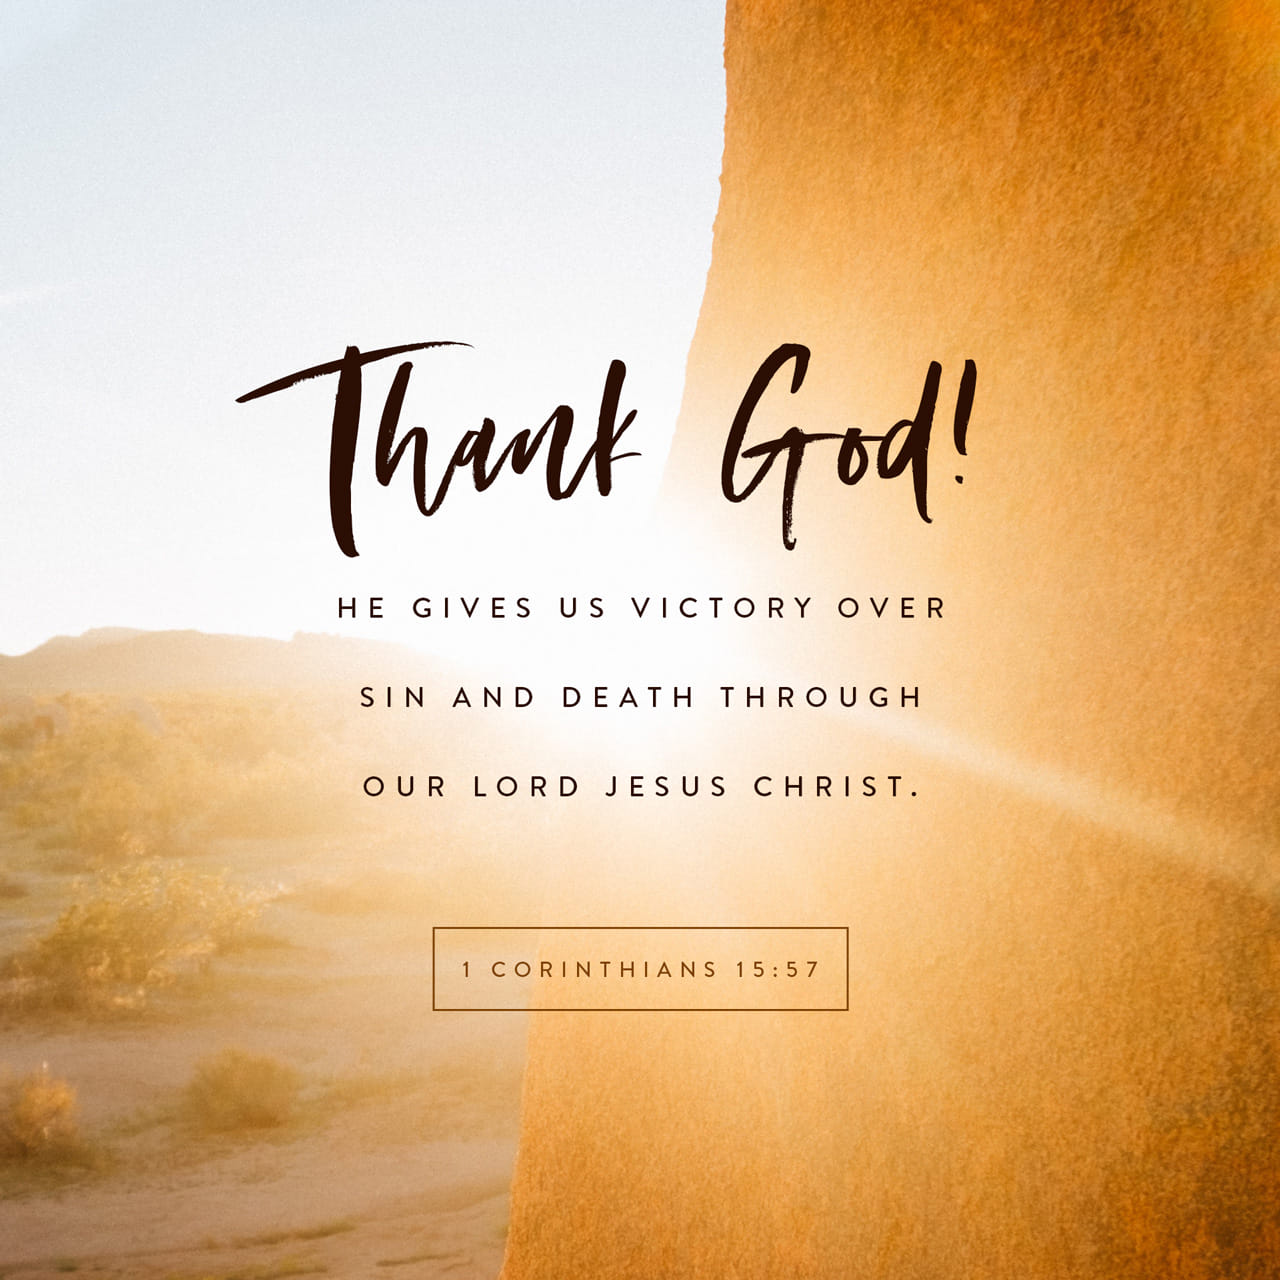 1 Corinthians 15:57 But thanks be to God! He gives us the victory through our Lord Jesus Christ. | New International Version (NIV)